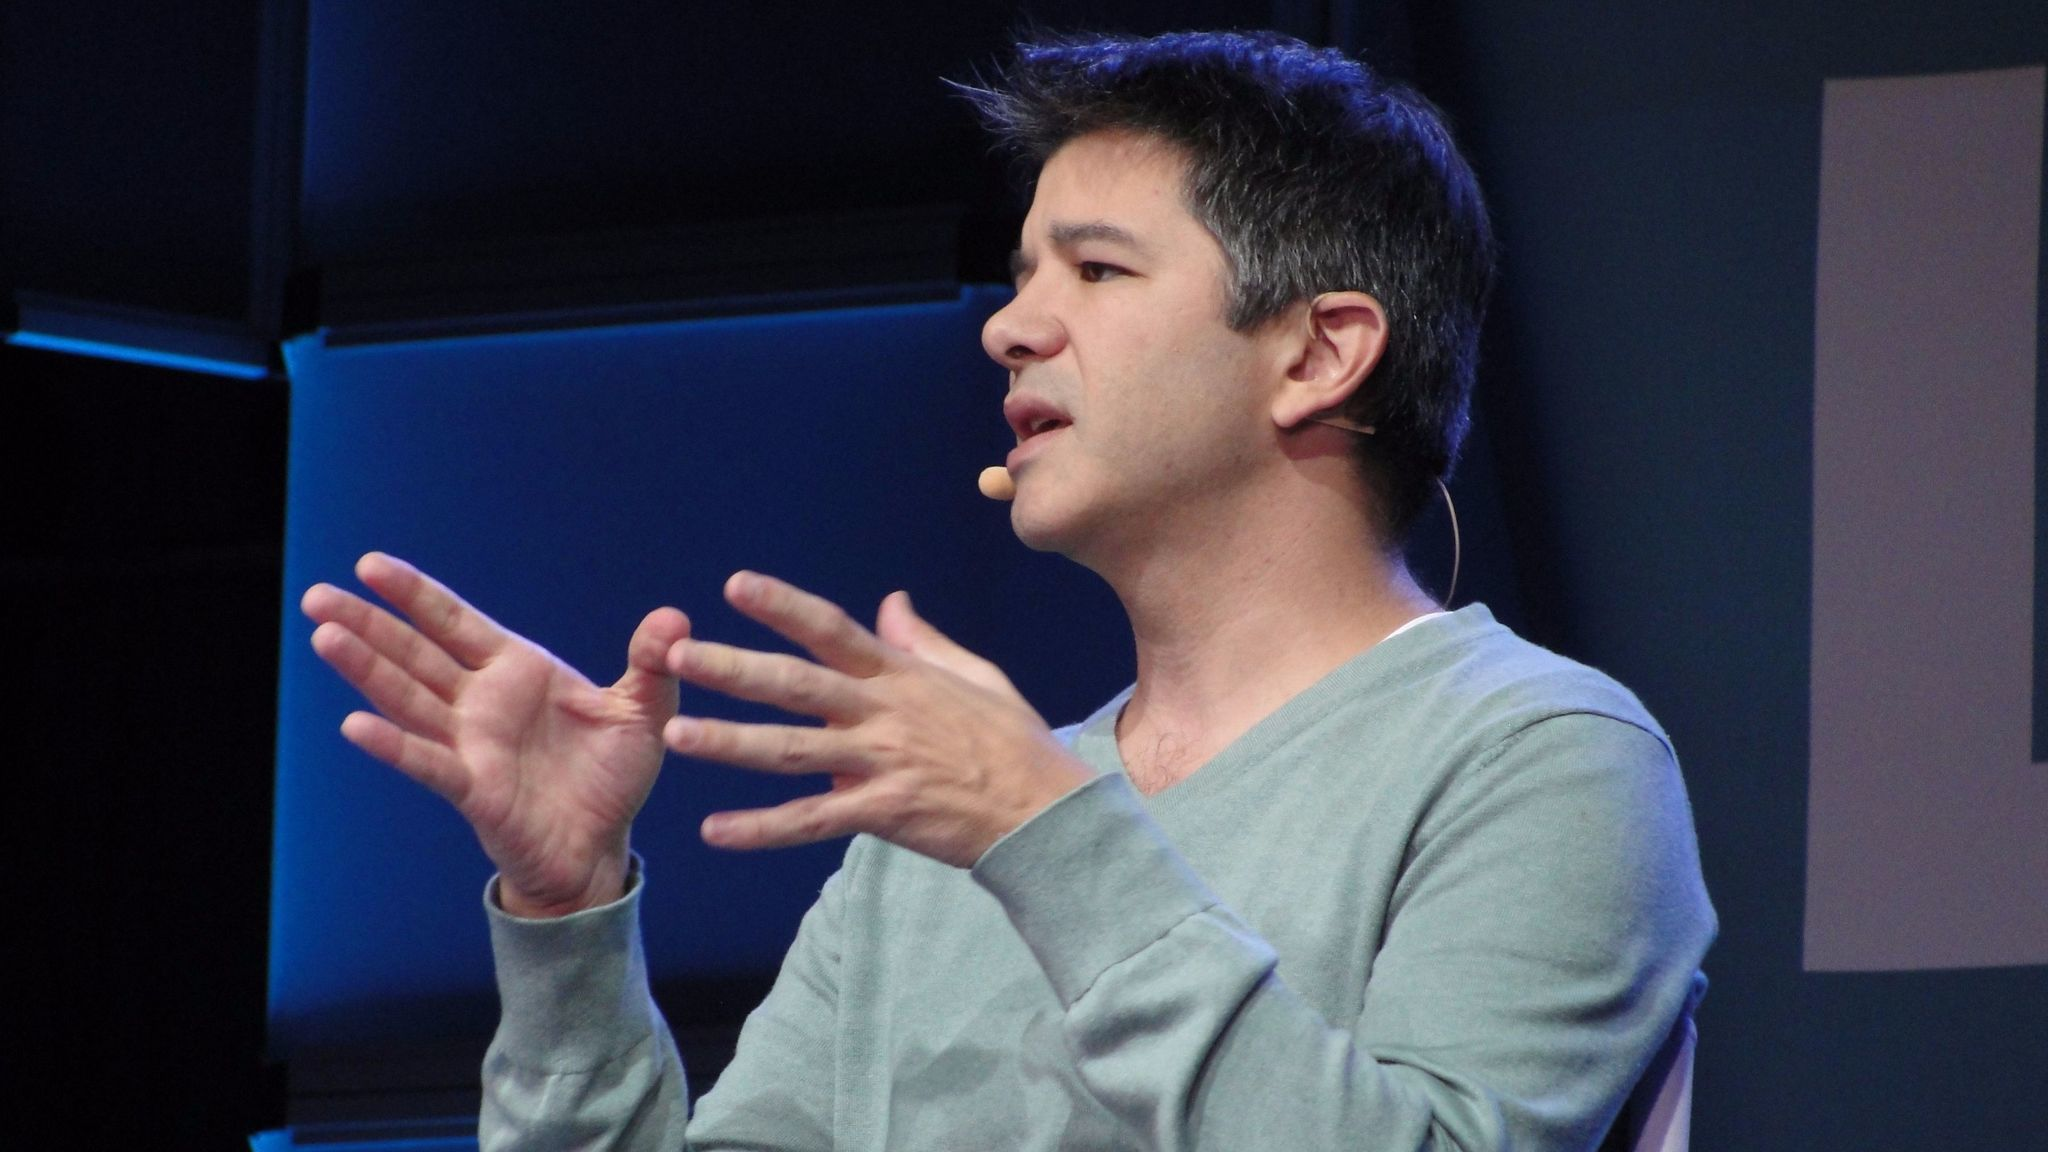 This Oct. 20, 2015, photo shows Uber co-founder and CEO Travis Kalanick at the WSJD Live technology conference in Laguna Beach.